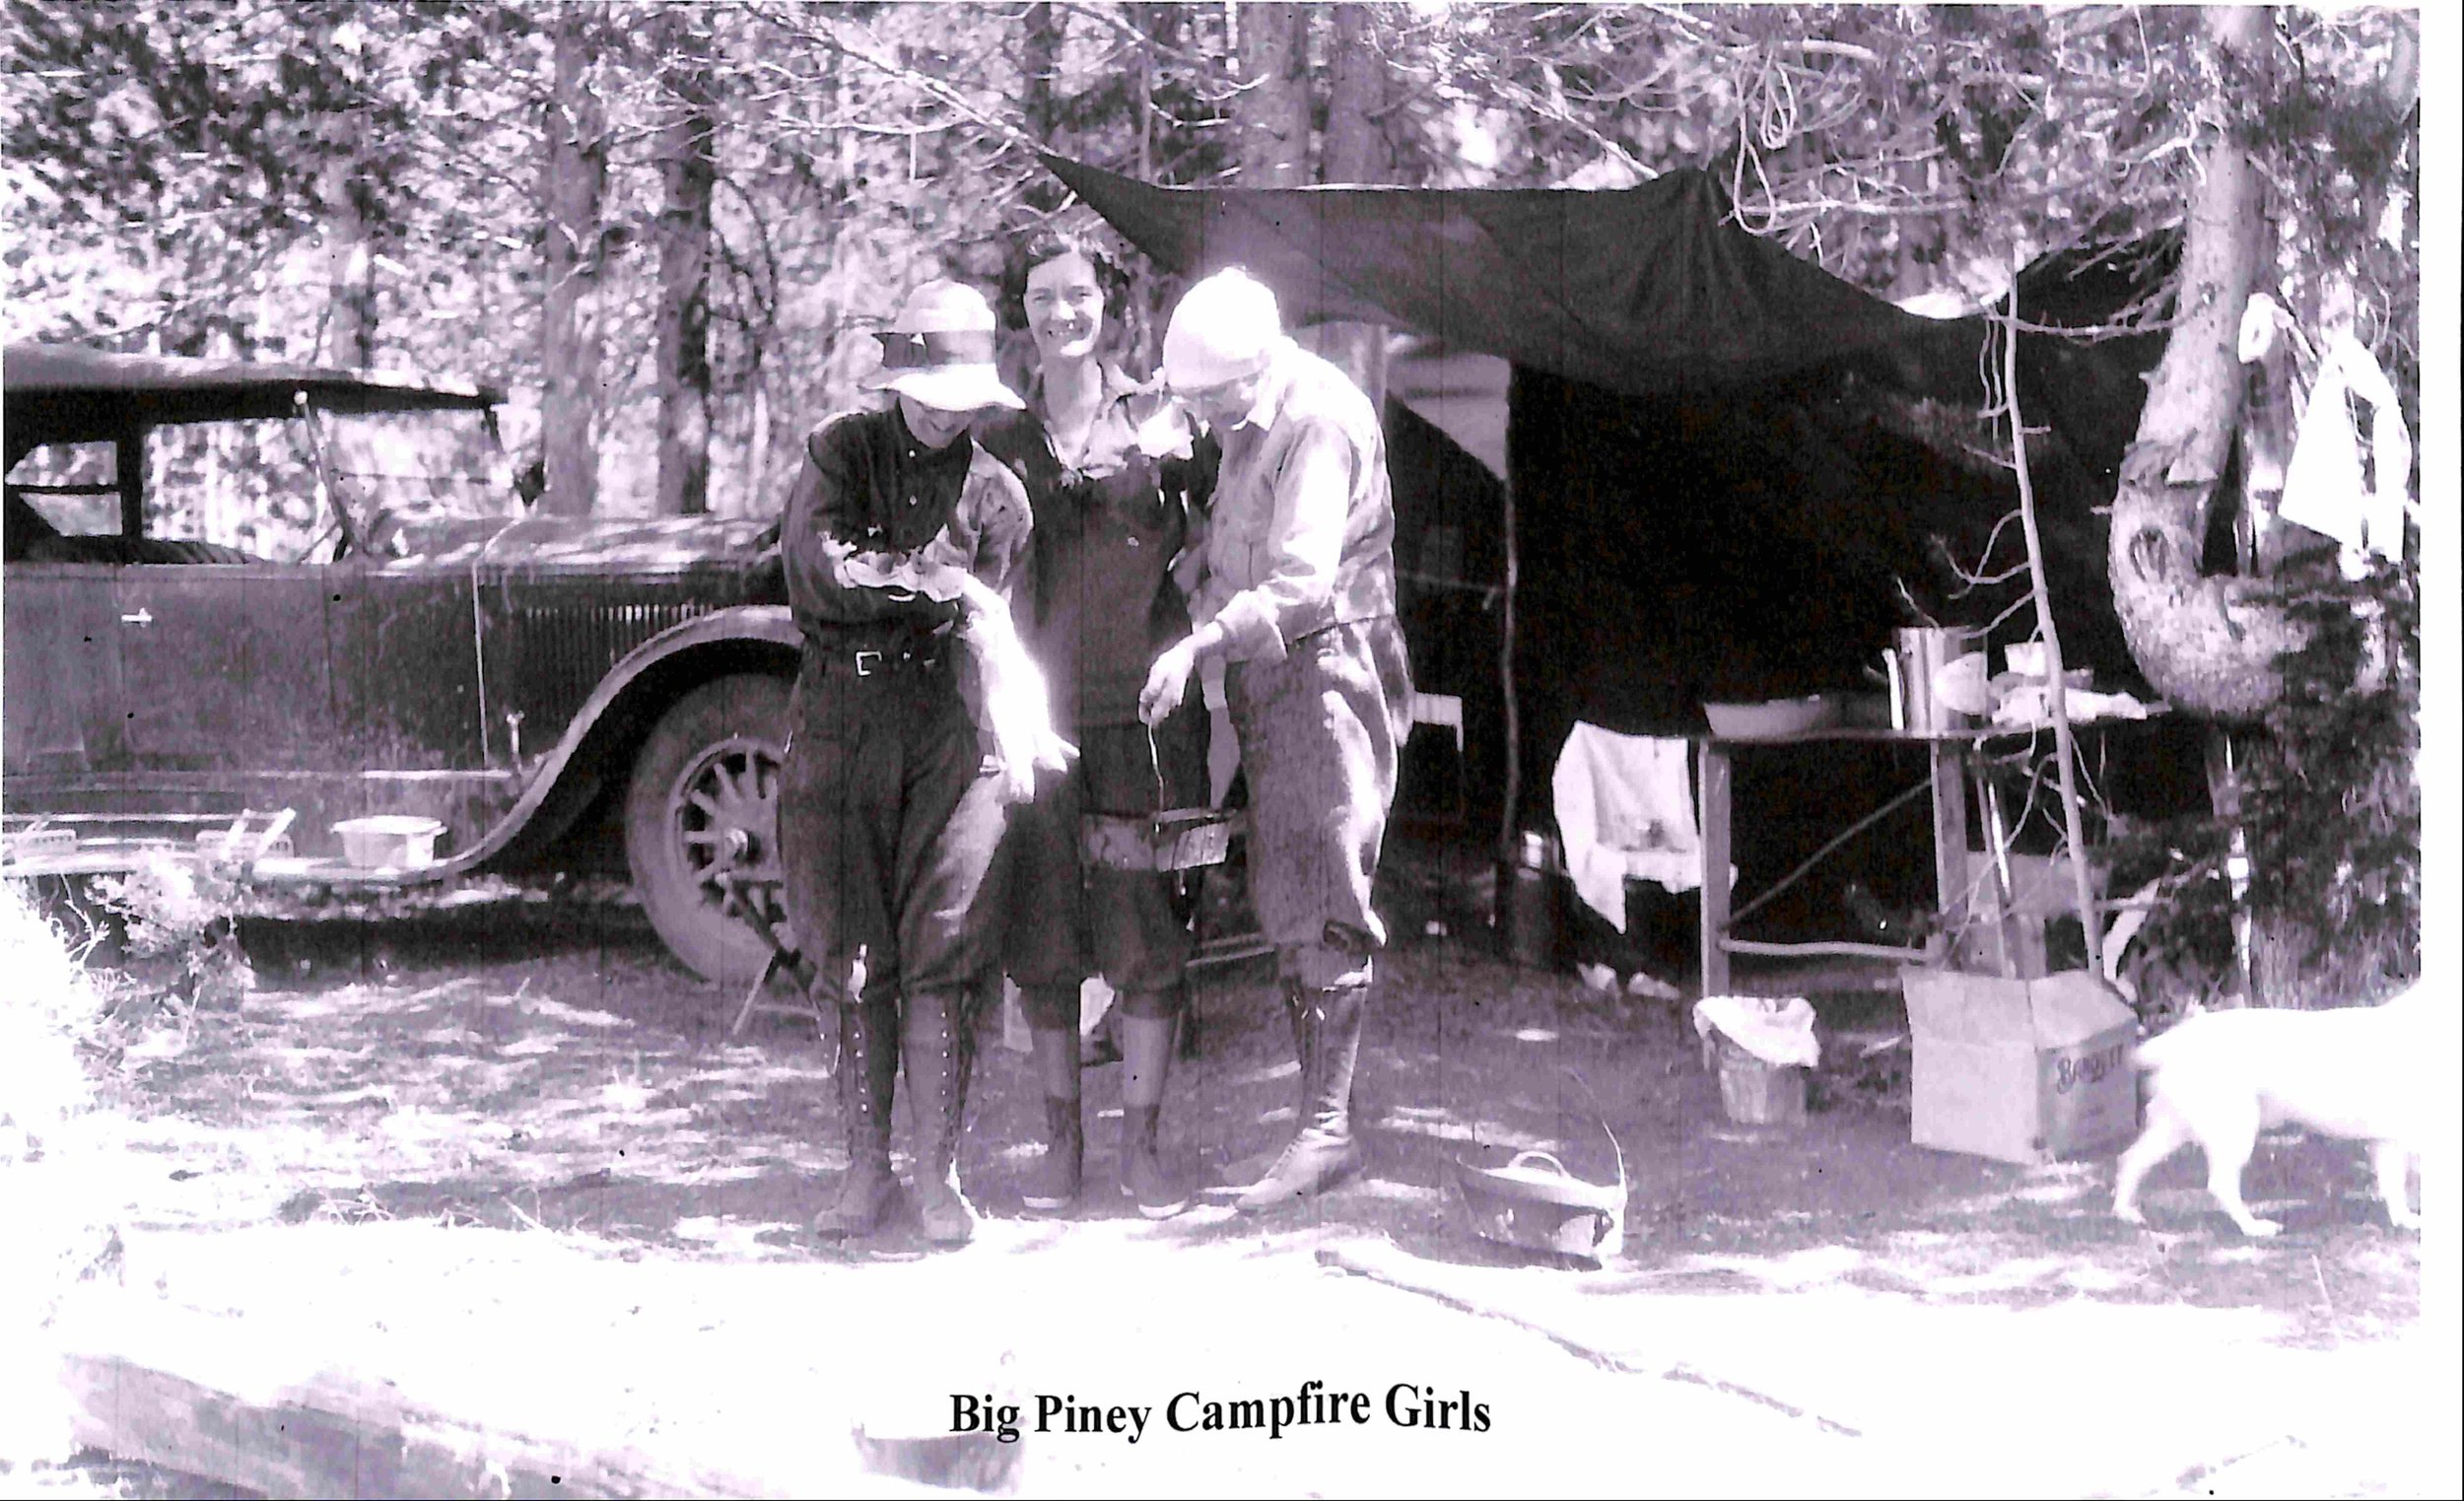 Big Piney Campfire Girls